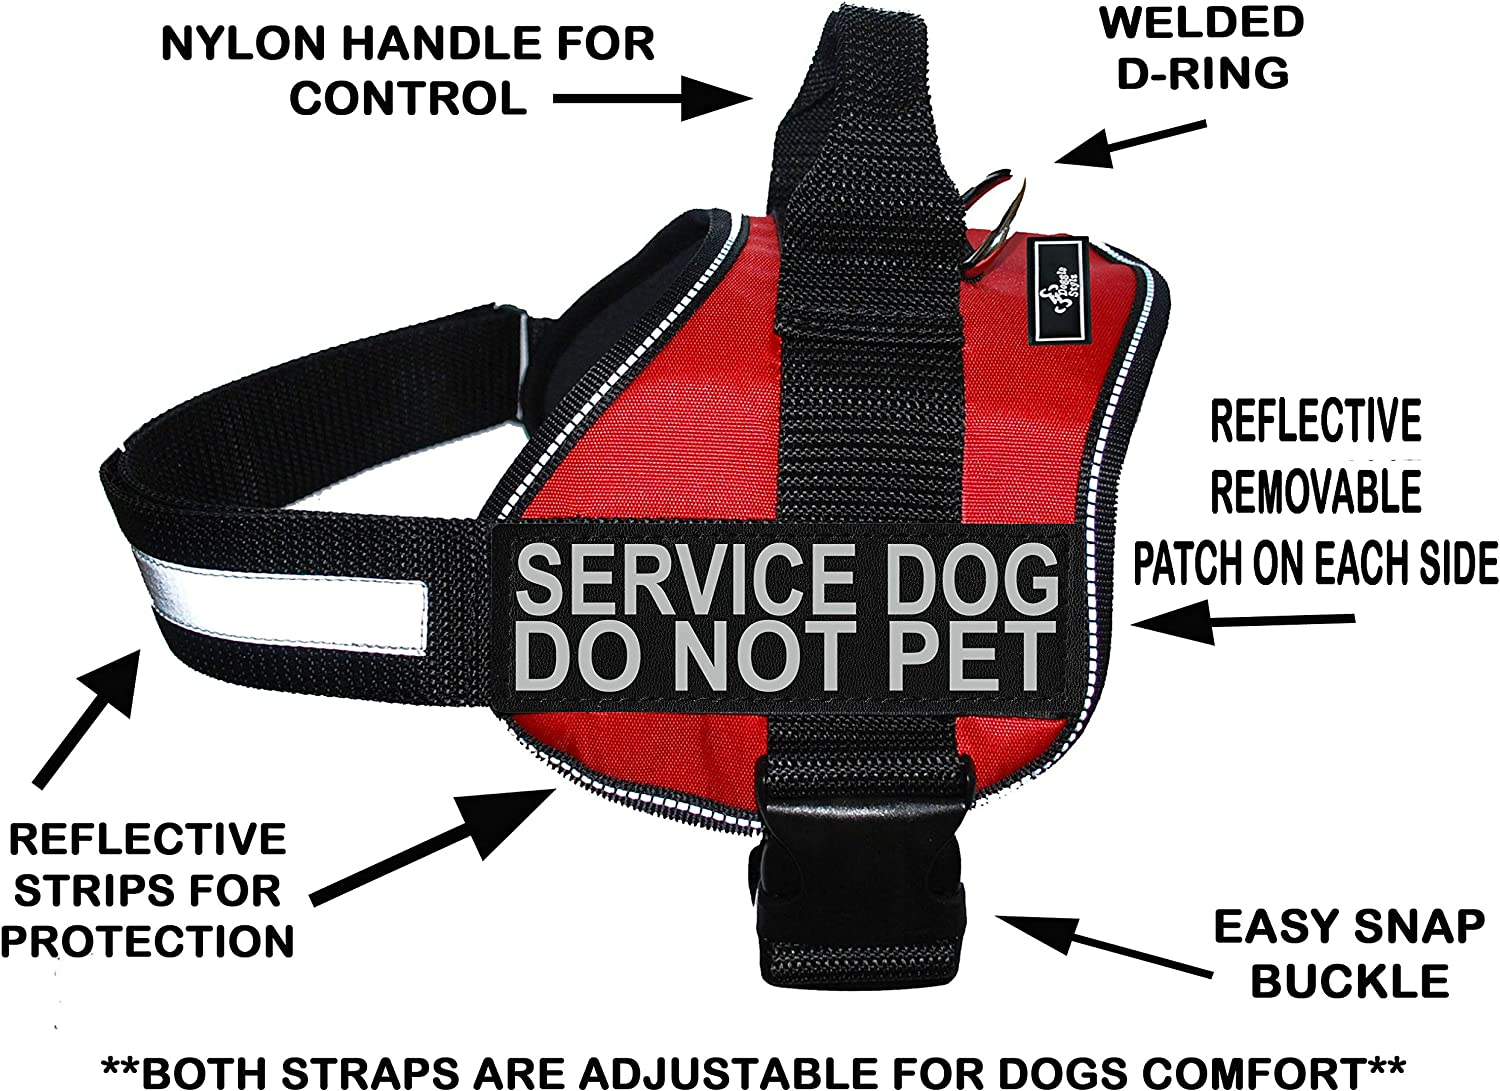 Doggie Stylz Service Dog Harness Vest Comes with 2 Reflective Service Dog DO NOT PET Patches. Please Measure Dog Before Ordering (Girth 1925 , Red)